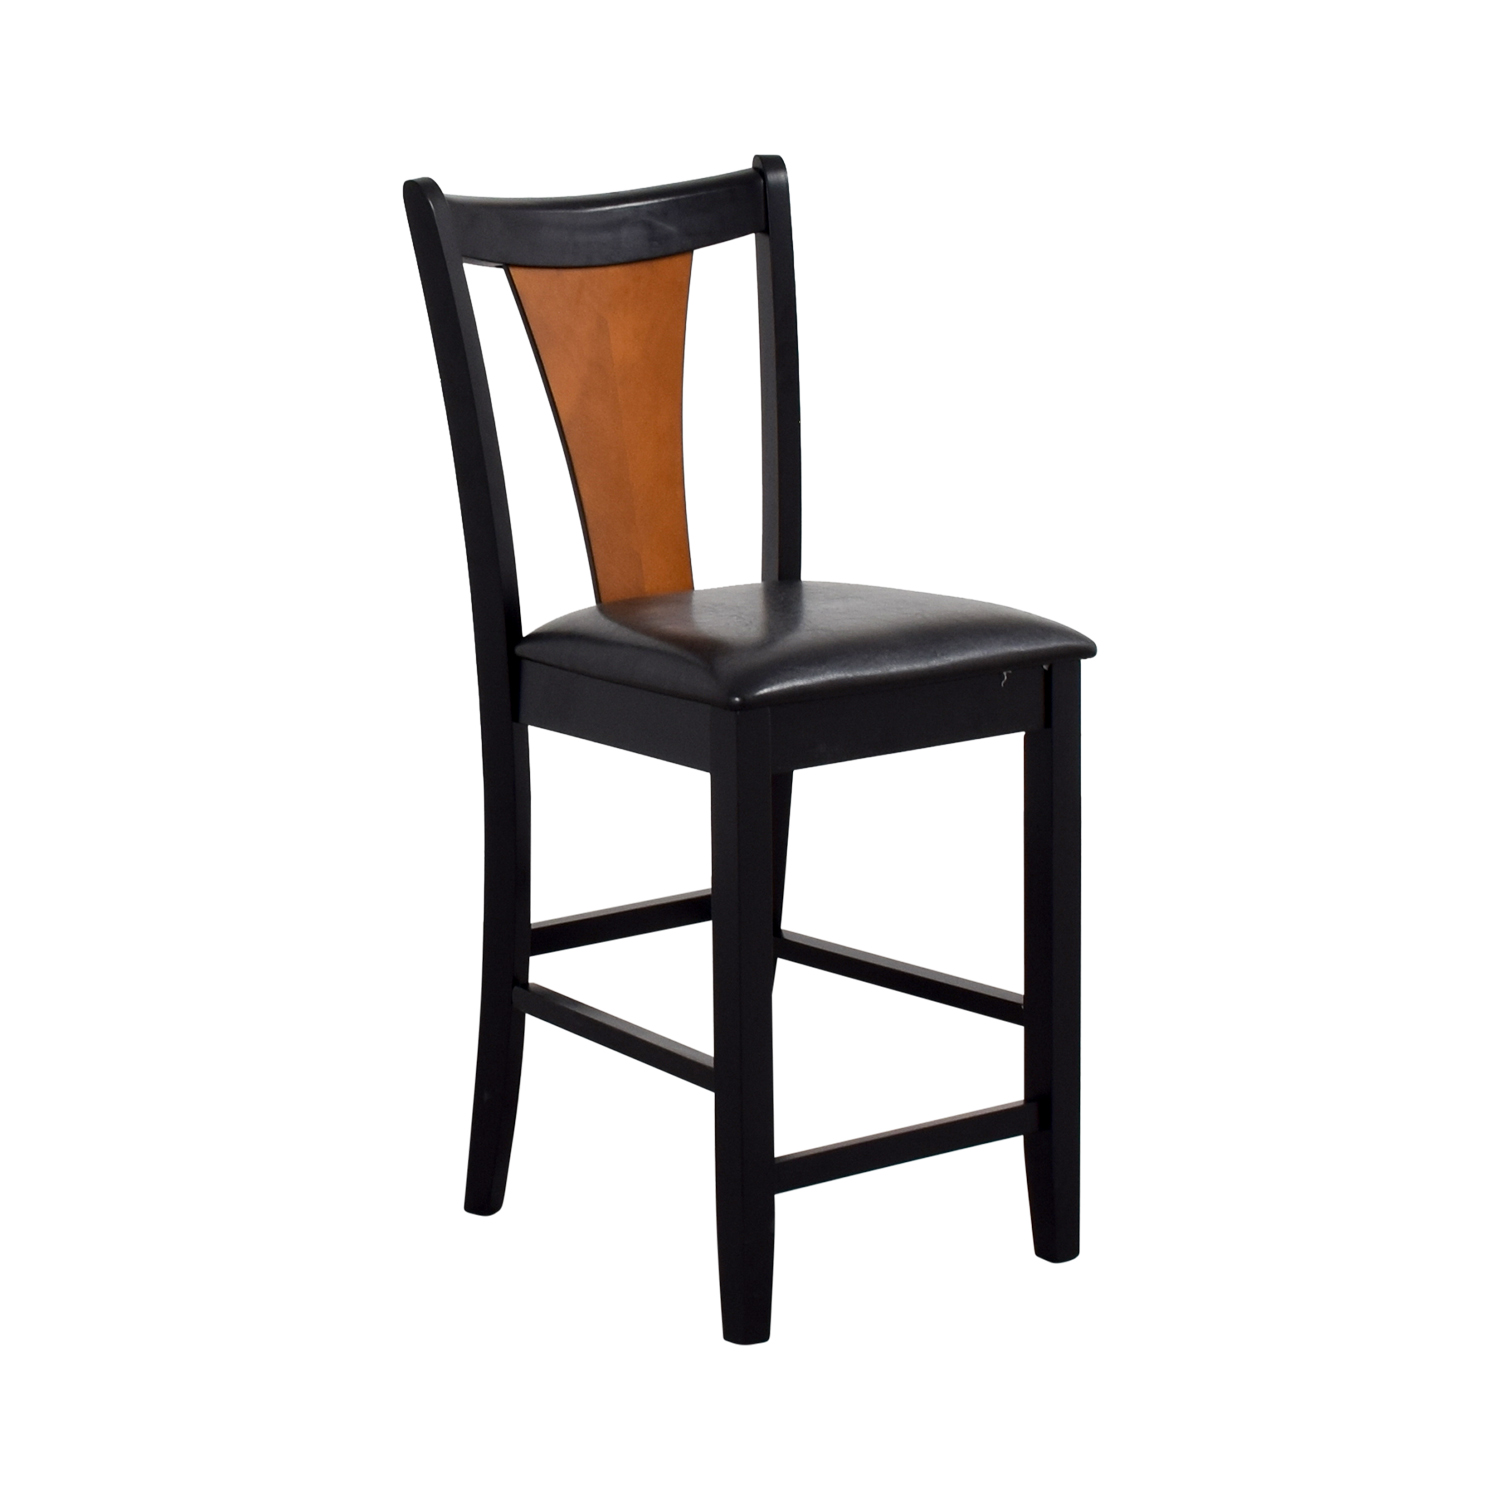 Coaster Furniture Coaster Furniture Amber-Black Finish Counter Chair nyc